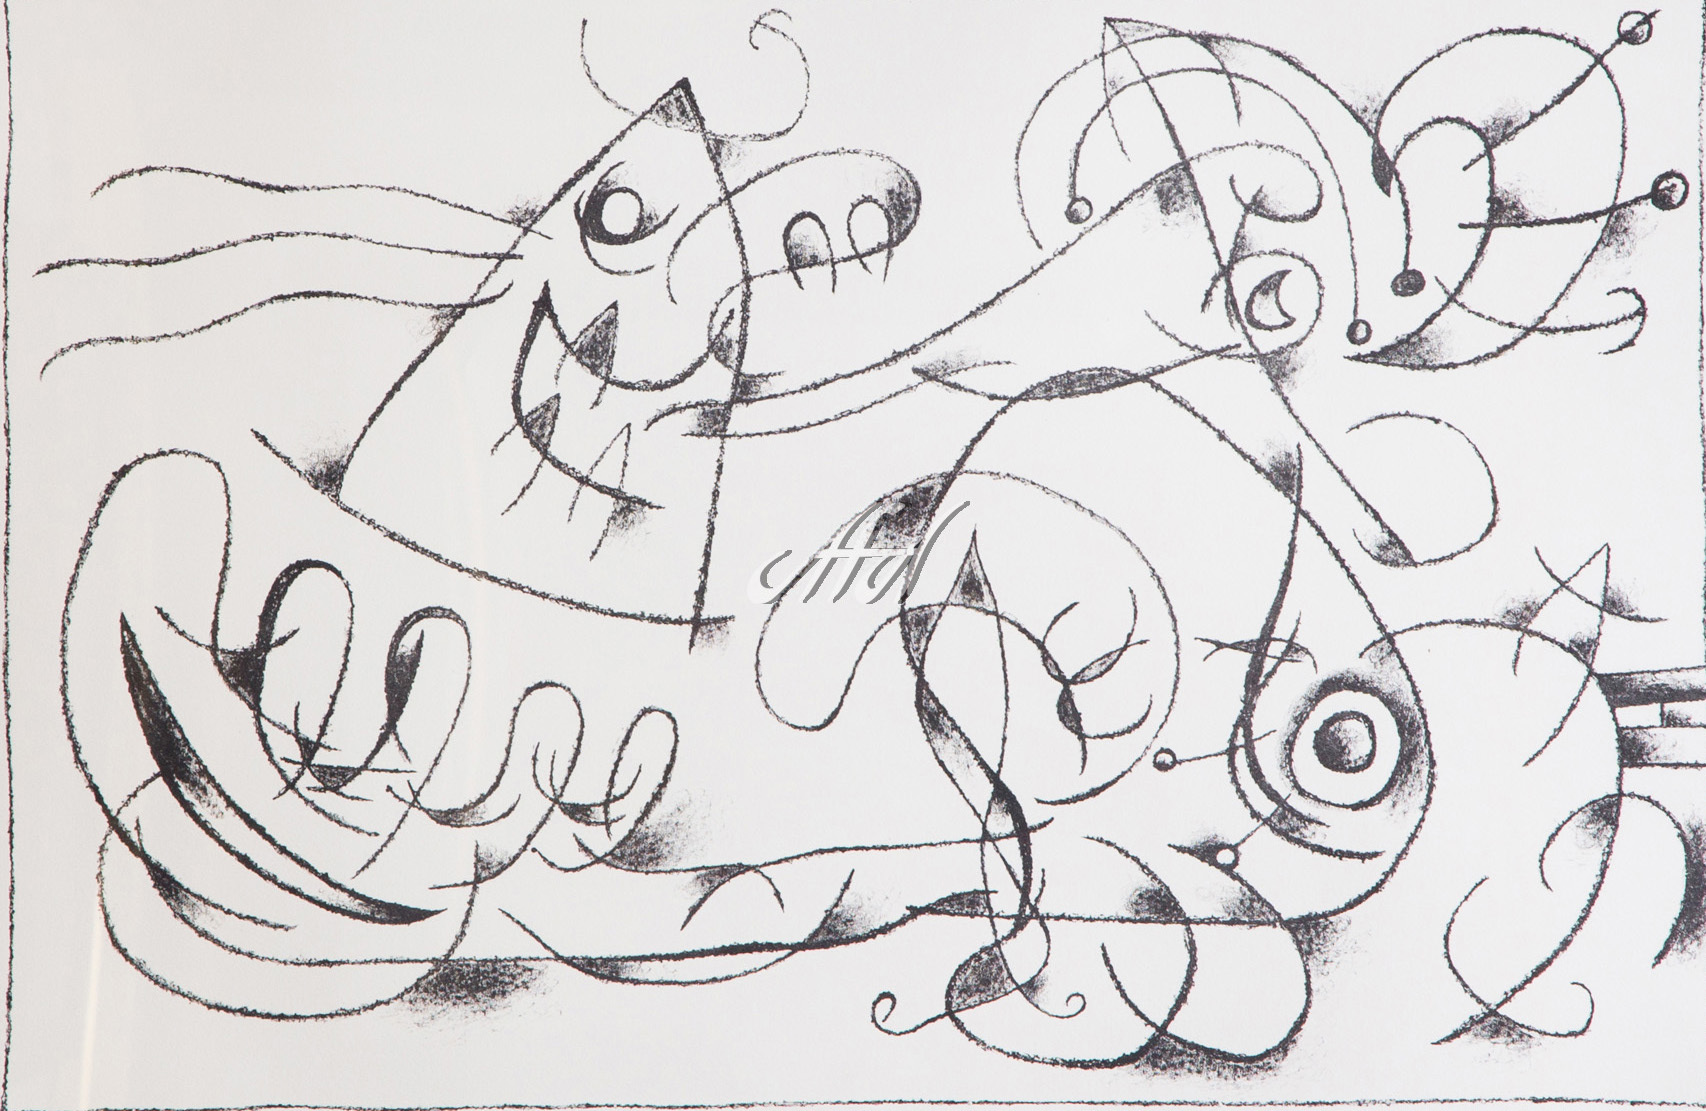 Joan_Miro_black_and_white2 UNF watermark.jpg